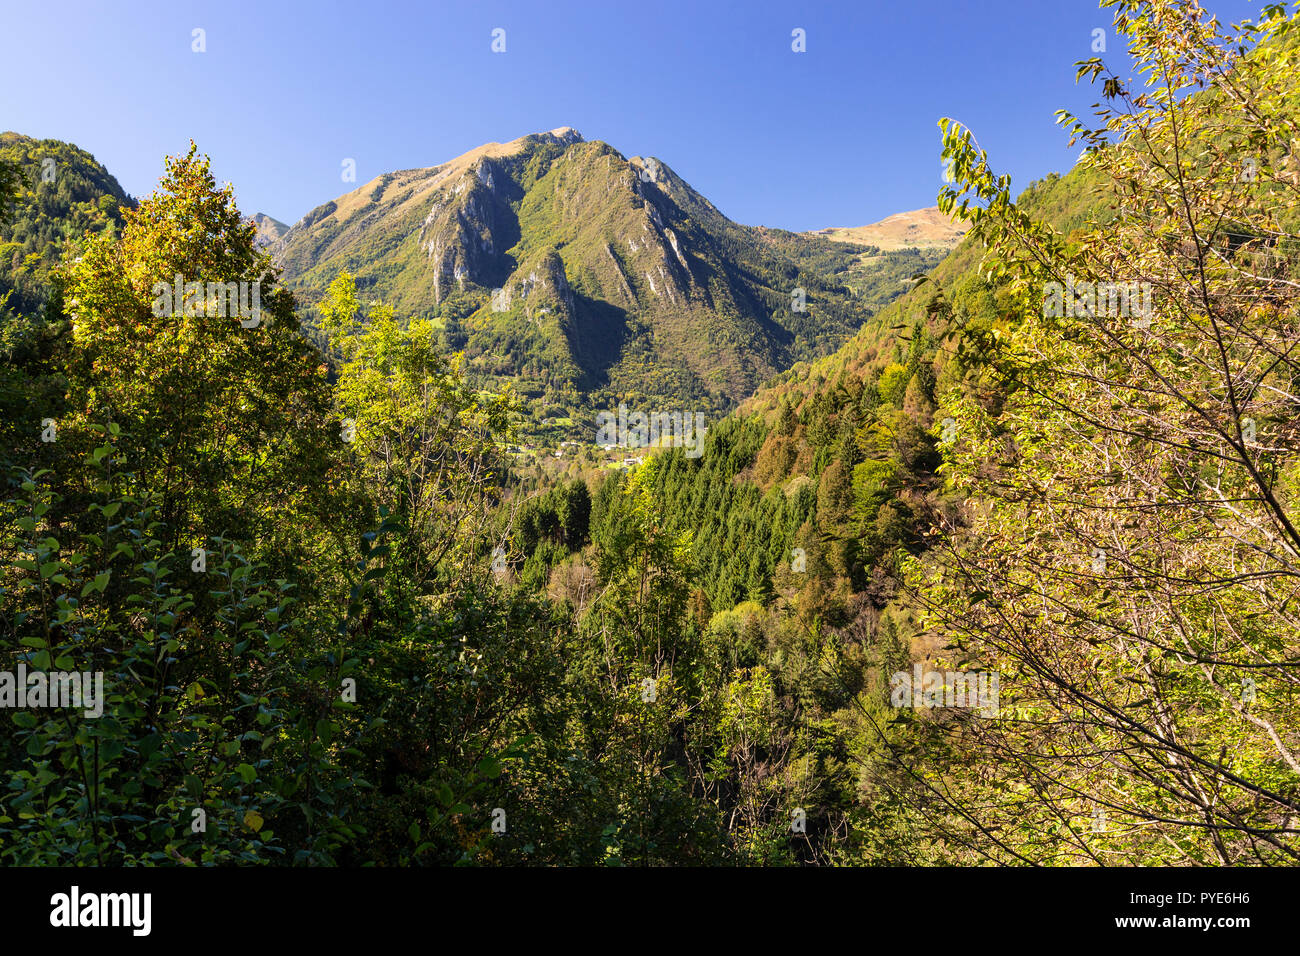 Mountains near Bagolino in northern Italy - Stock Image